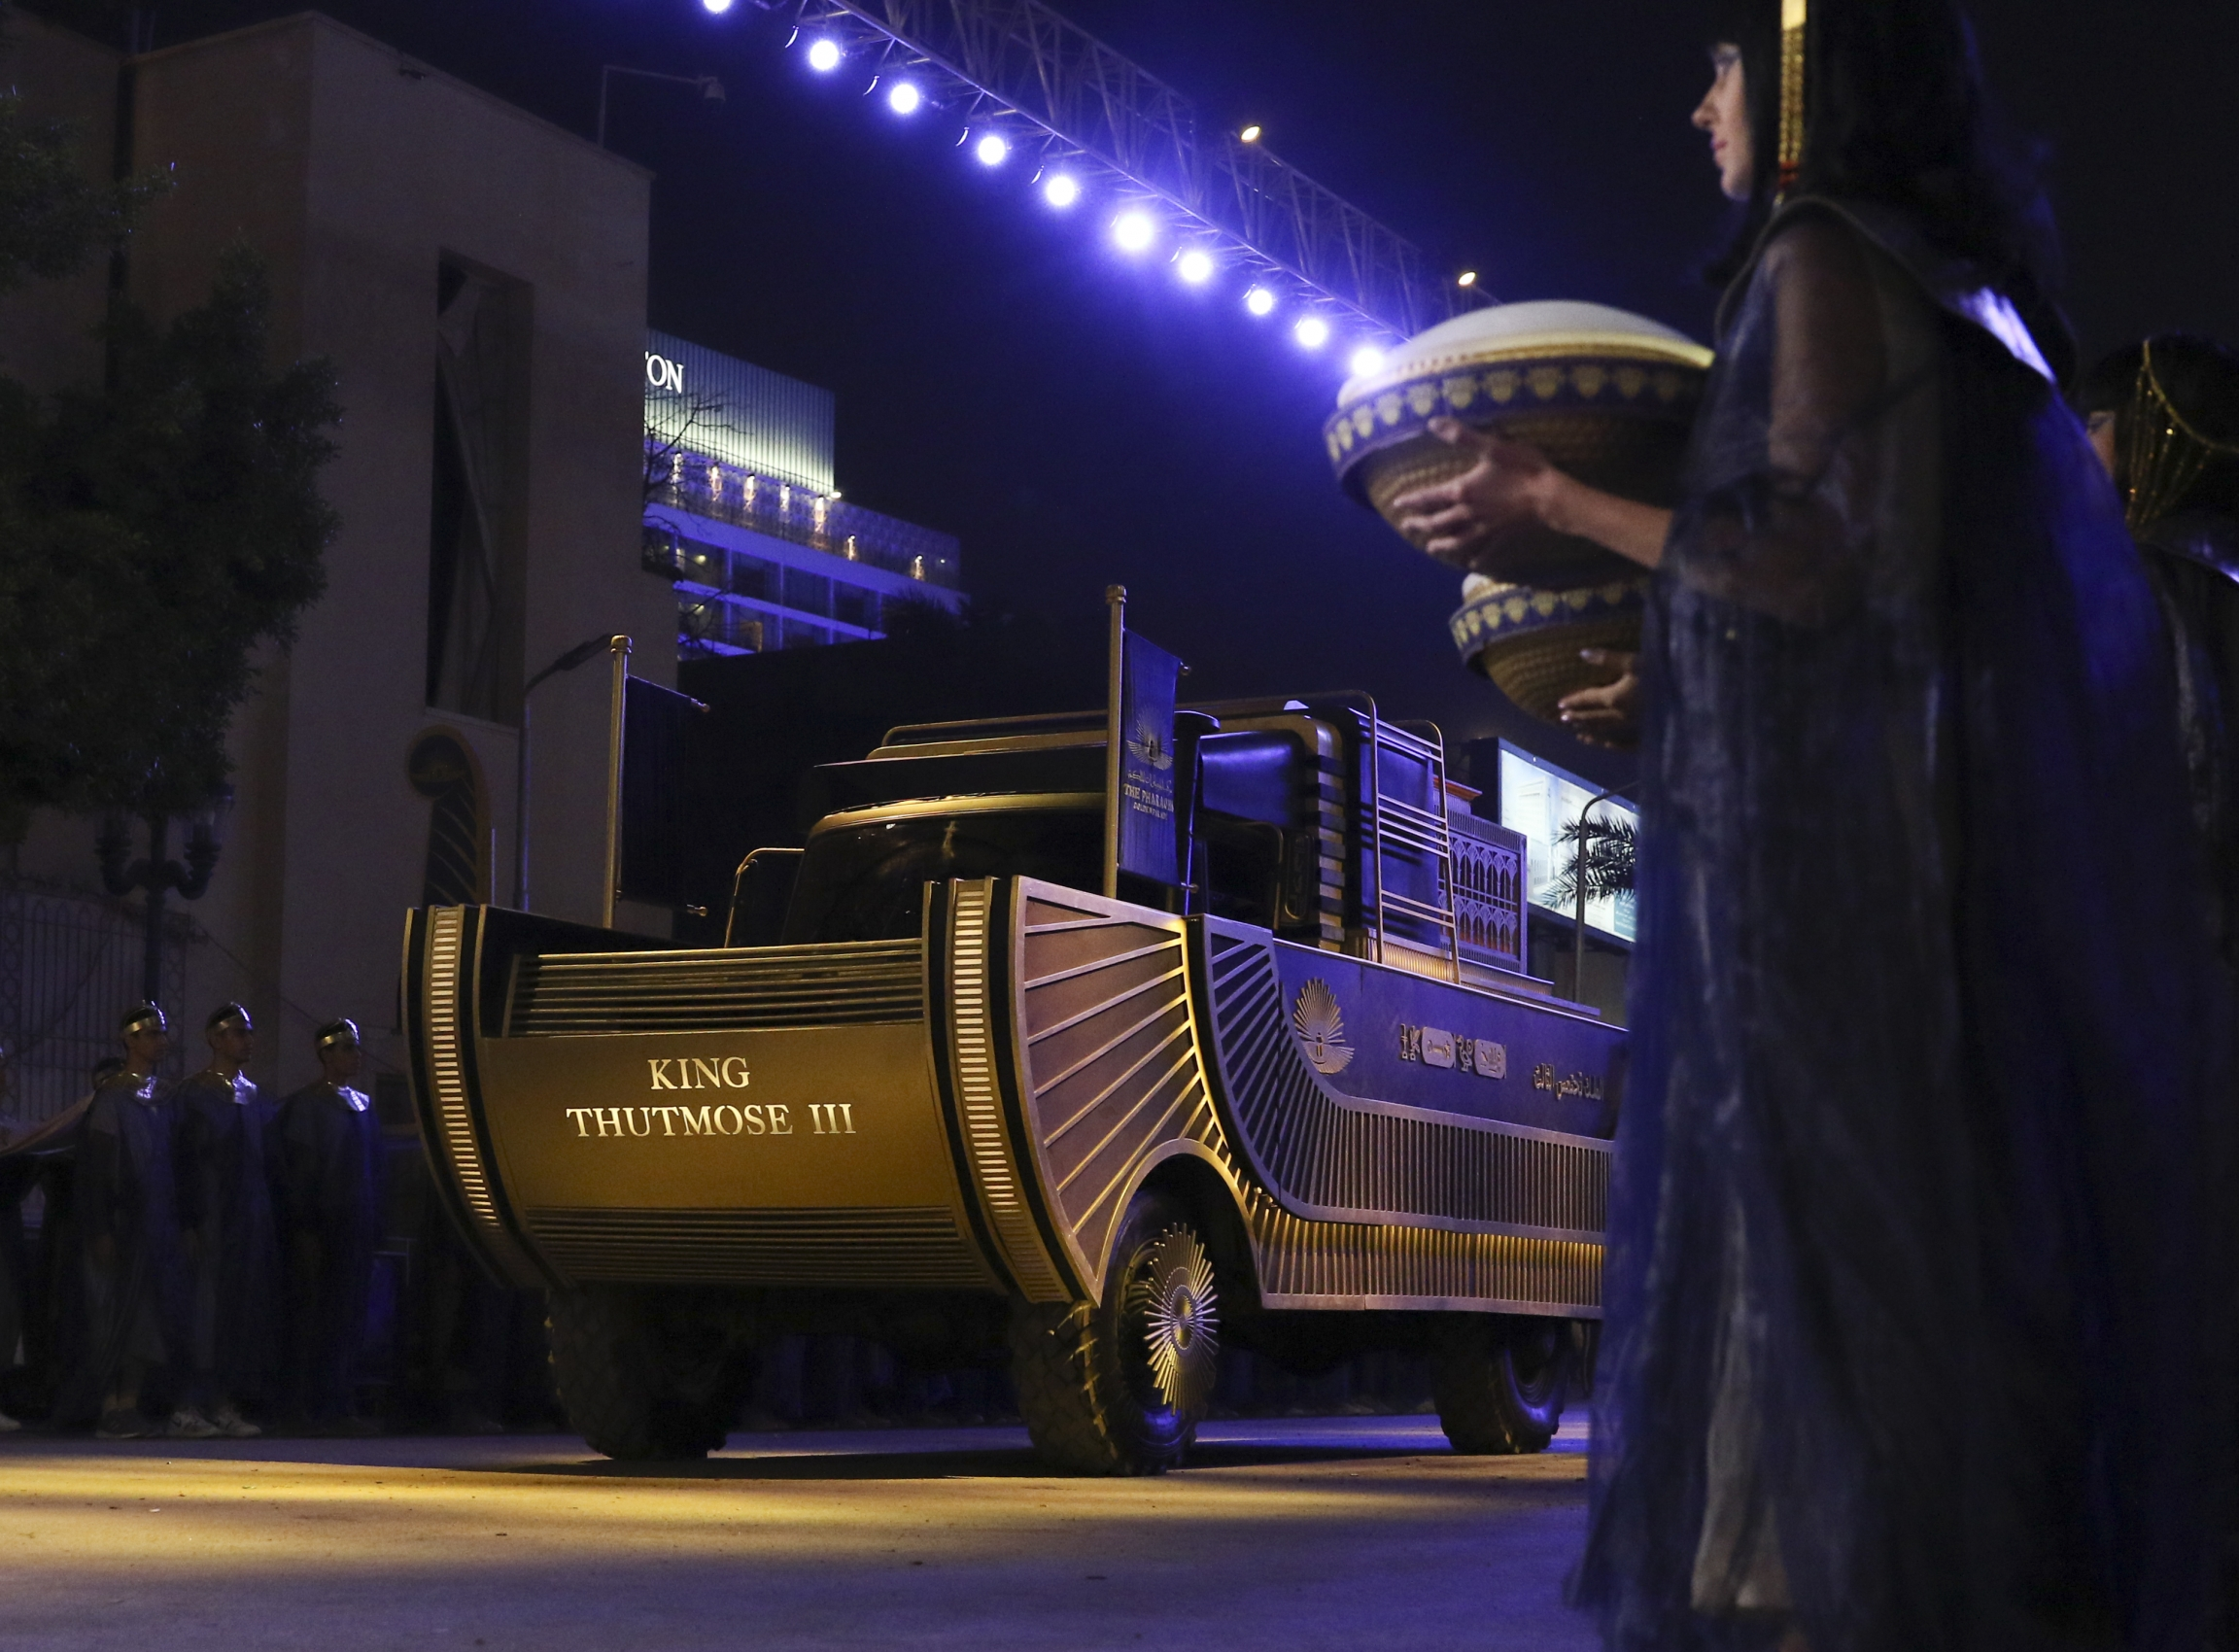 A convoy of vehicles transporting royal mummies is seen in Cairo, April 3, 2021. Egypt held a parade celebrating the transport of 22 of its prized royal mummies from the Egyptian Museum to the newly opened National Museum of Egyptian Civilization.